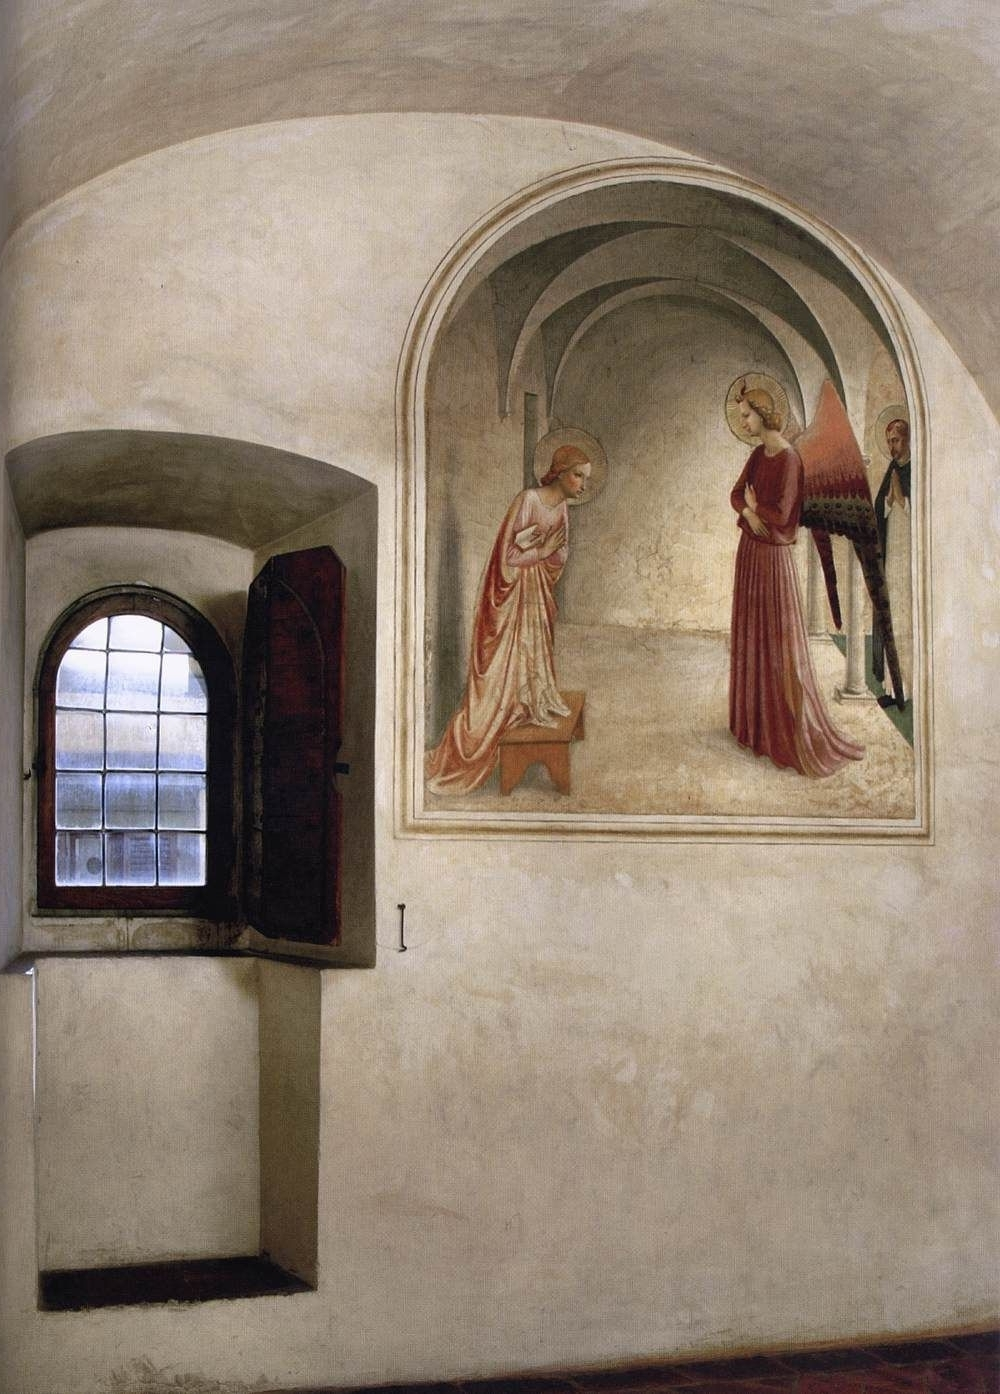 Fra Angelico/san Marco Monastery, Florence (View 11 of 15)